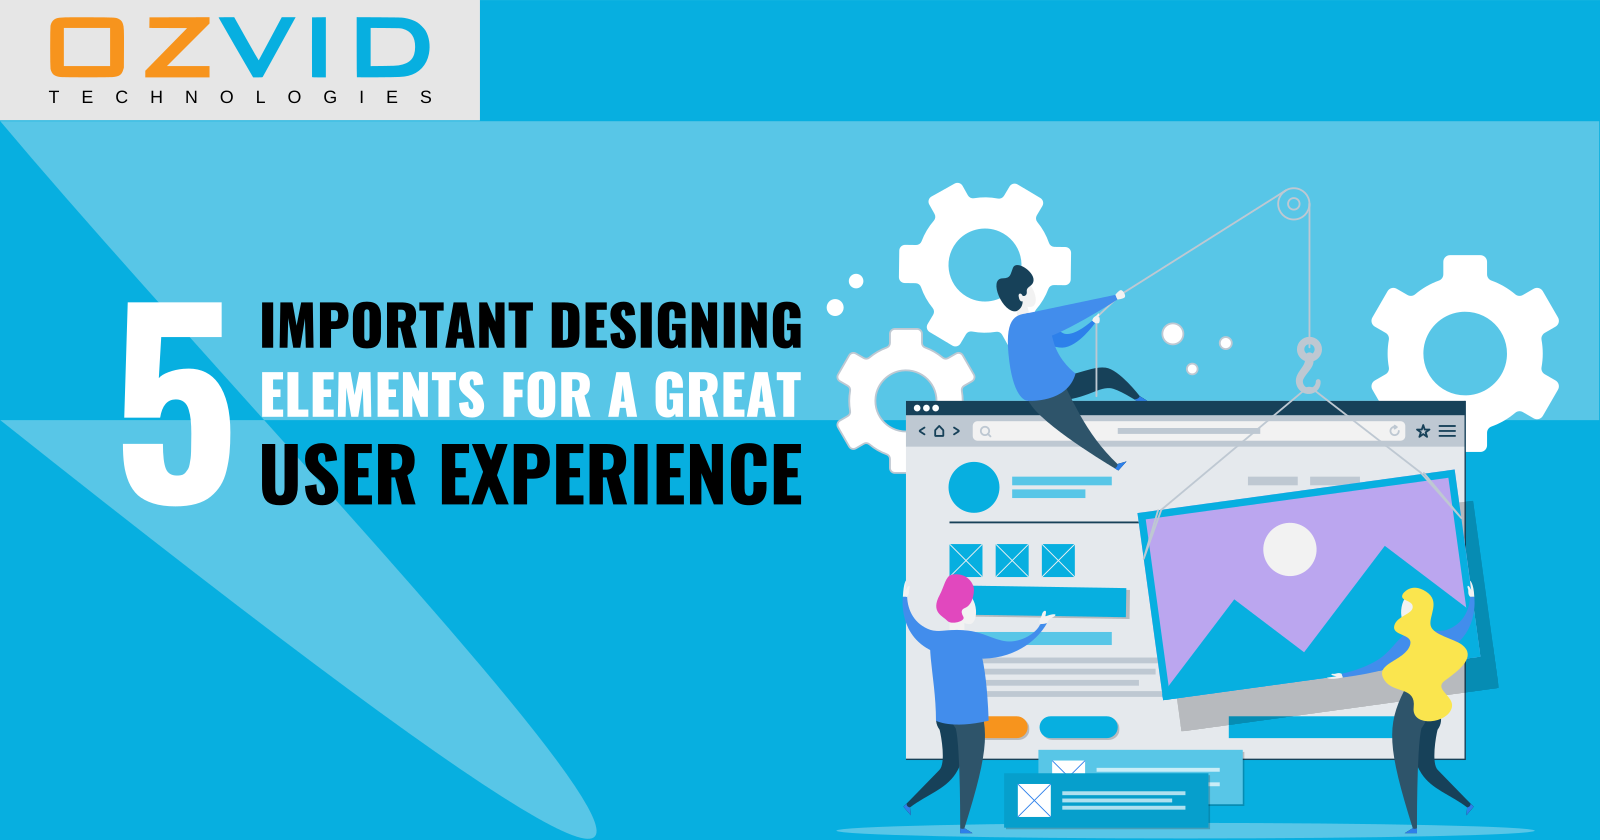 5 Important Designing Elements for a Great User Experience